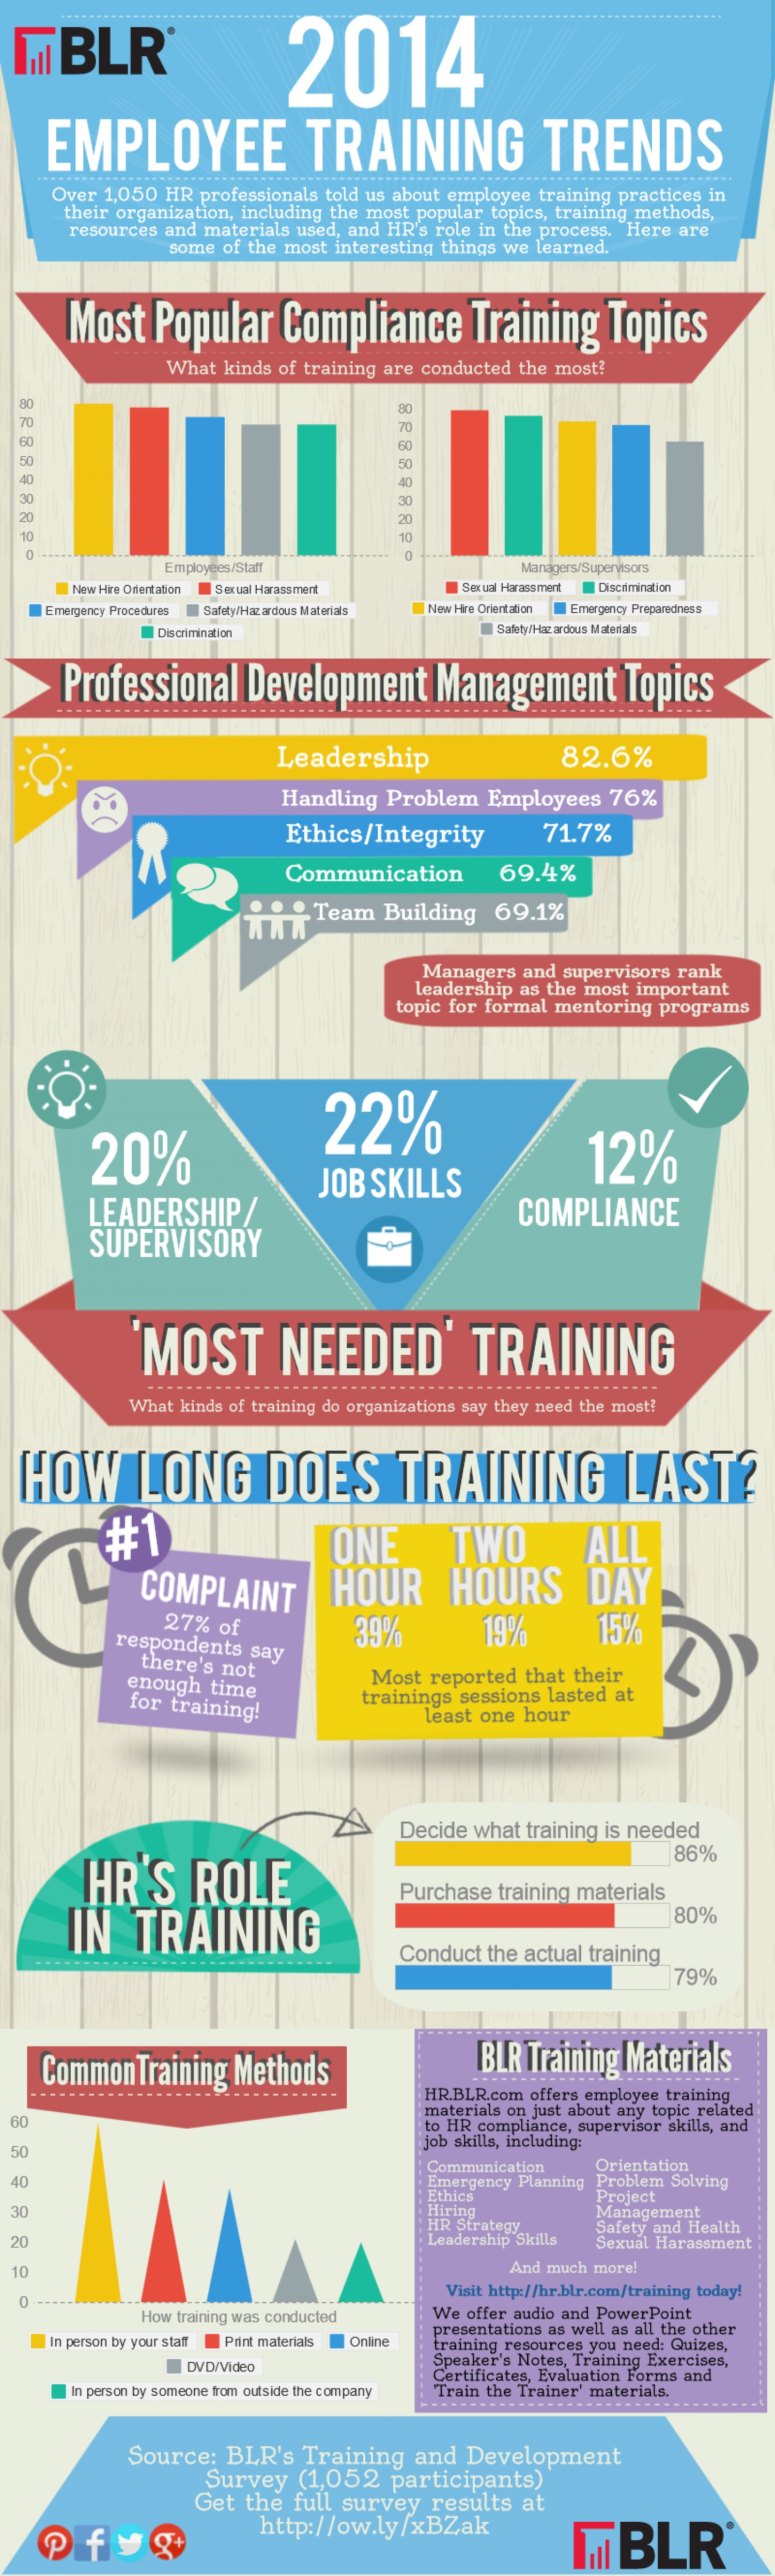 2014-employee-training-trends_5396f3ff5a0c3_w1500